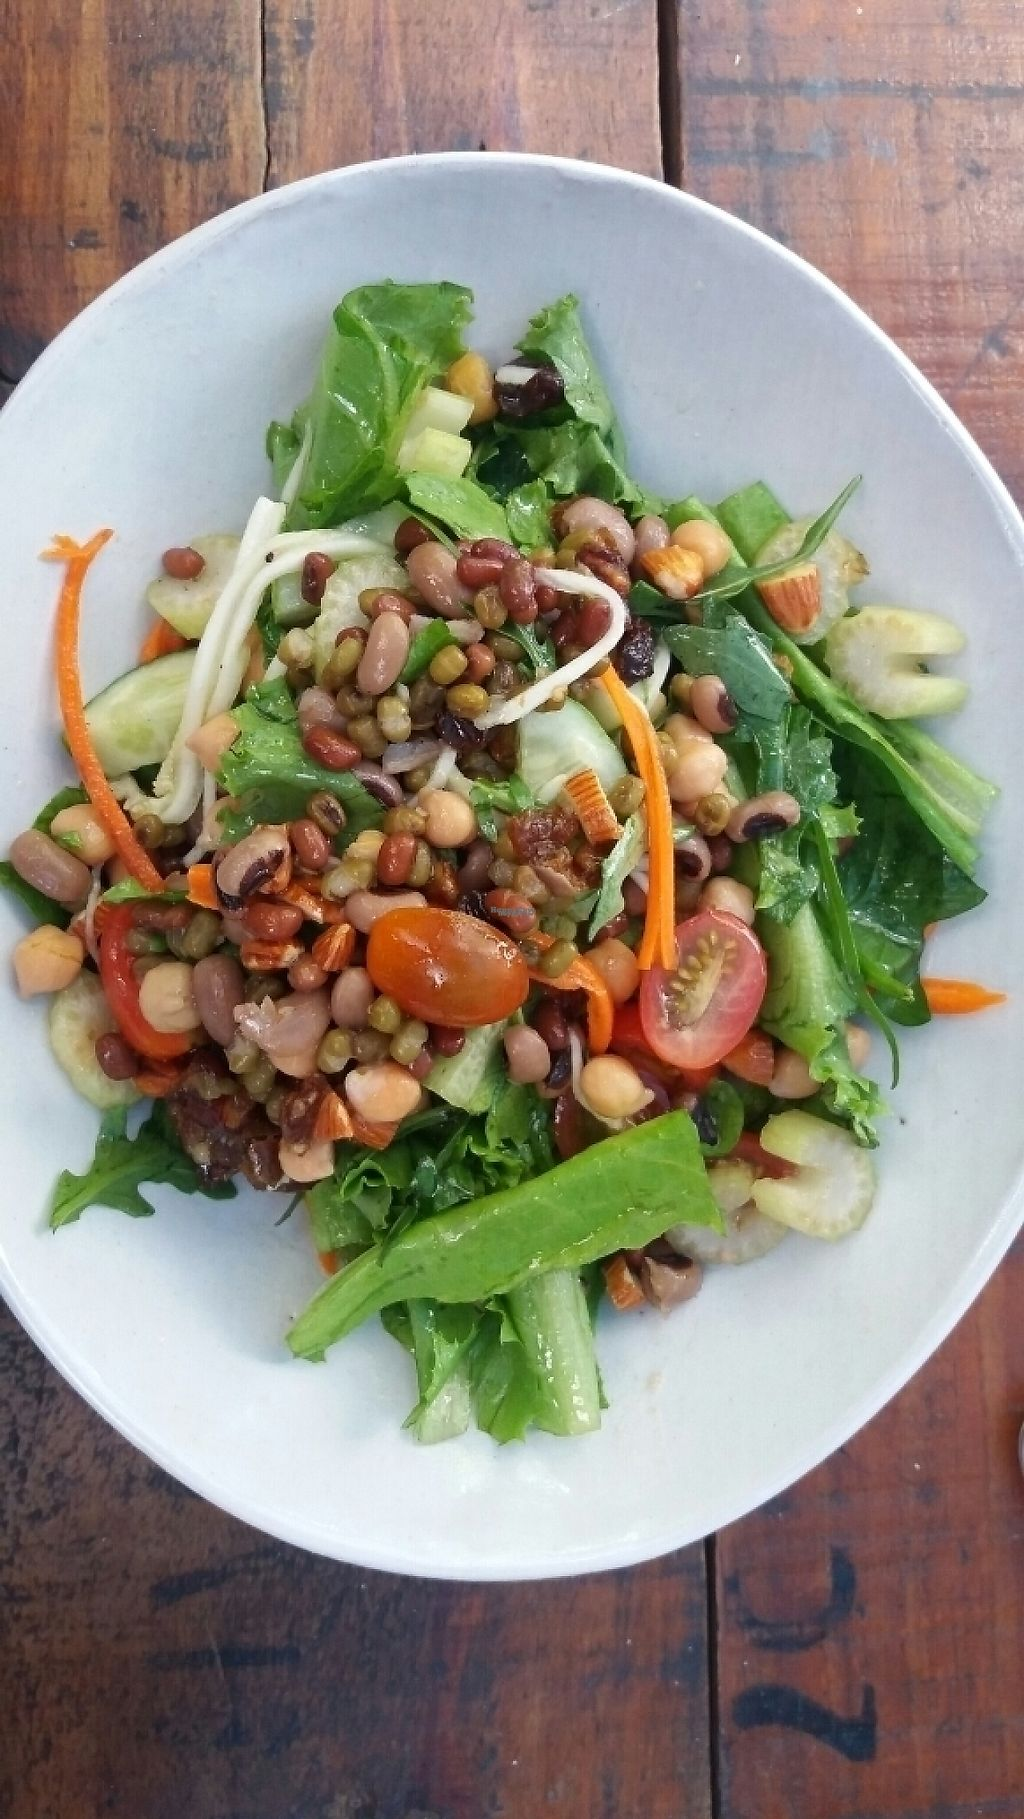 """Photo of ARTillery  by <a href=""""/members/profile/coco_papillon"""">coco_papillon</a> <br/>the best salad ! <br/> January 24, 2017  - <a href='/contact/abuse/image/31769/215619'>Report</a>"""